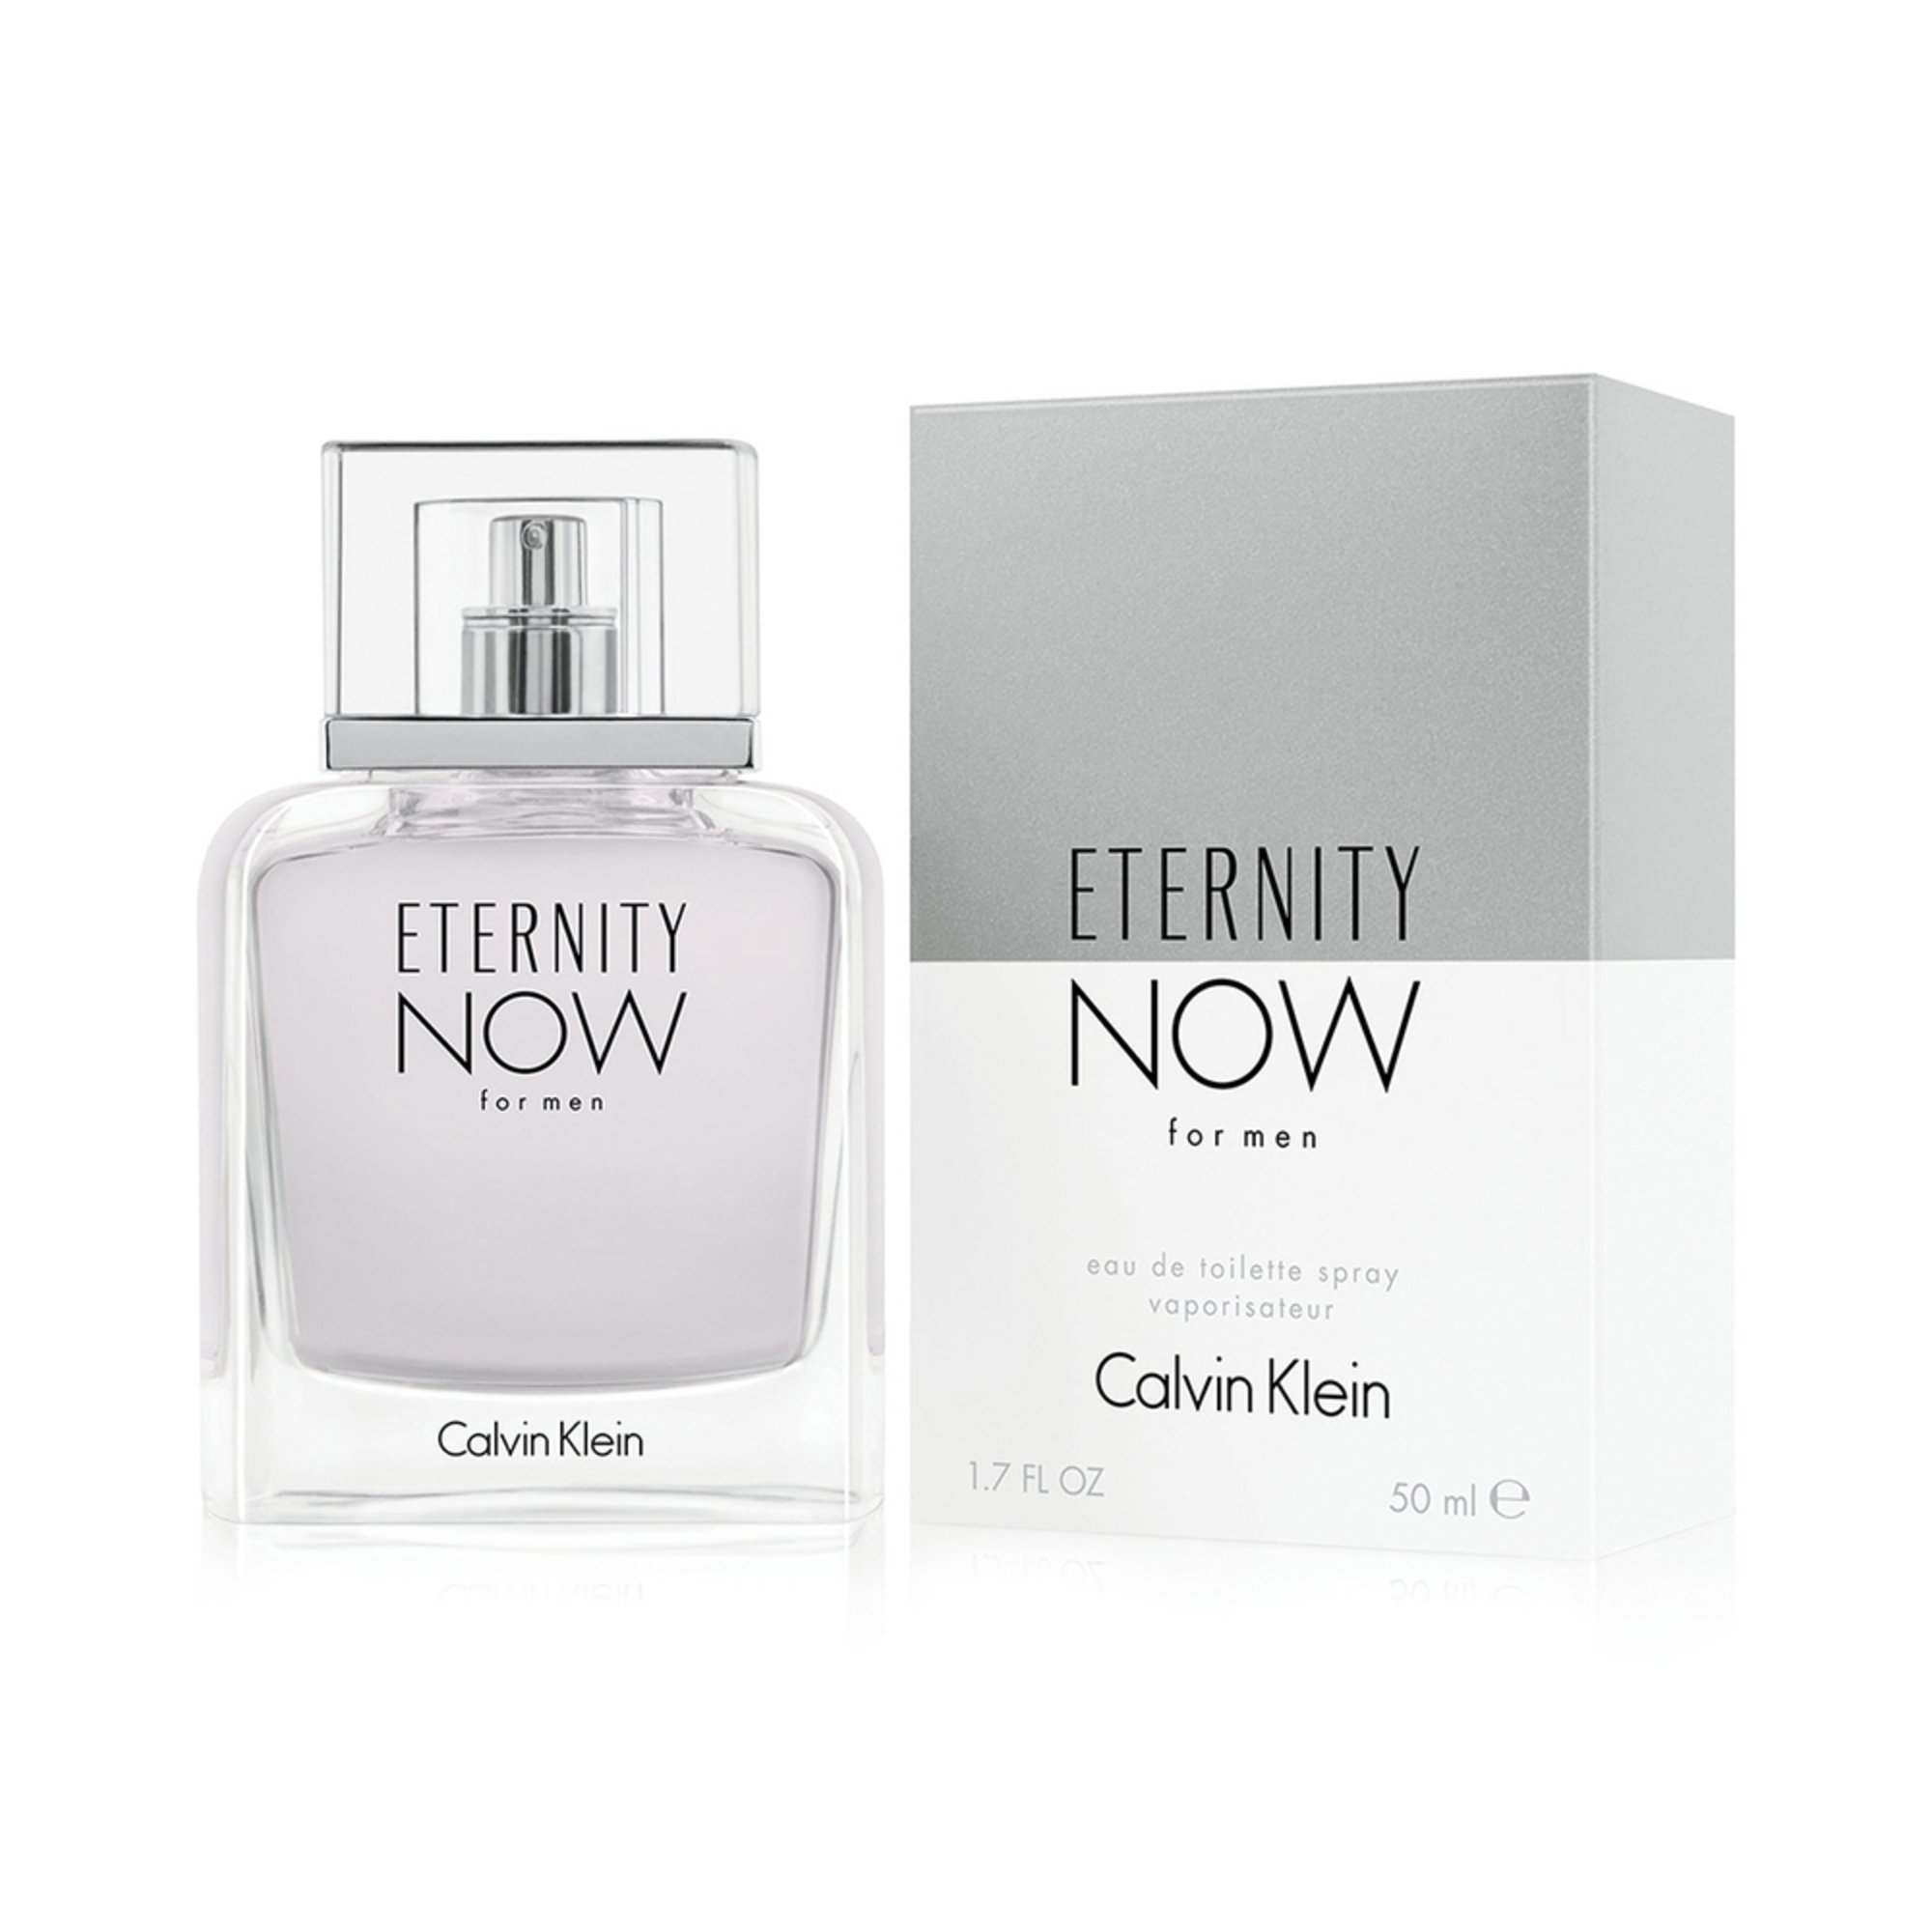 Calvin Klein Eternity Men Now Eau De Toilette 17oz Cologne Man 0